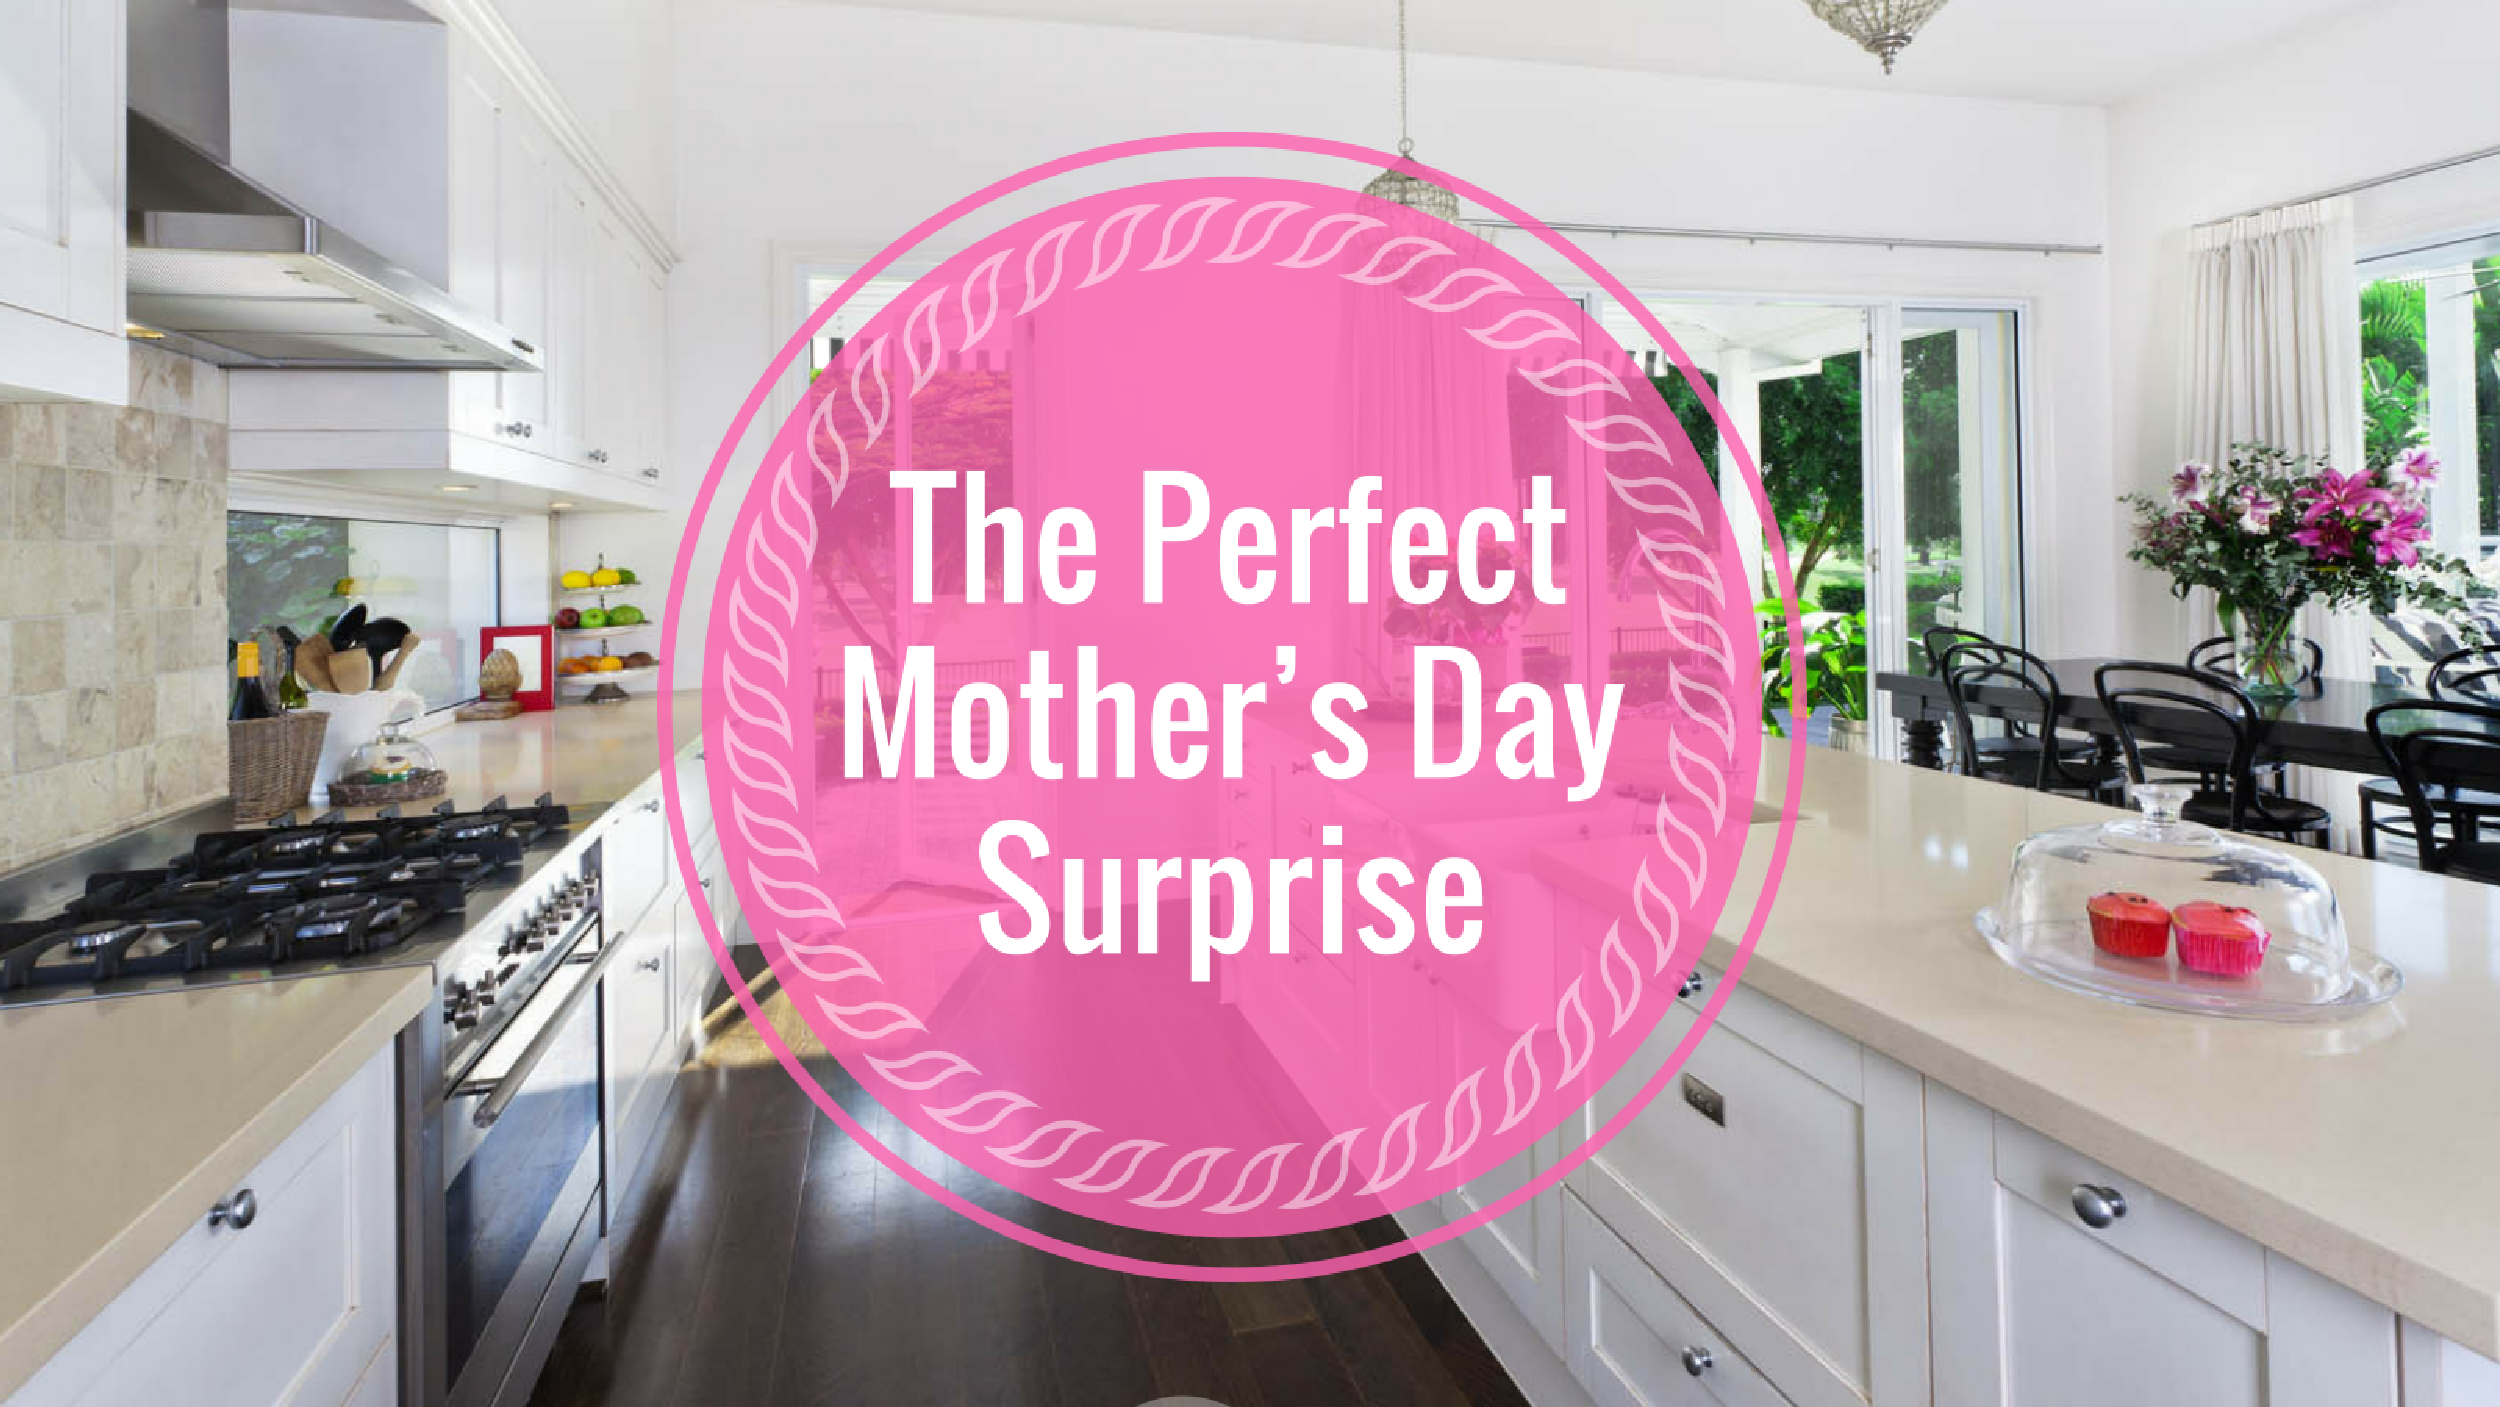 The Perfect Mother's Day Surprise